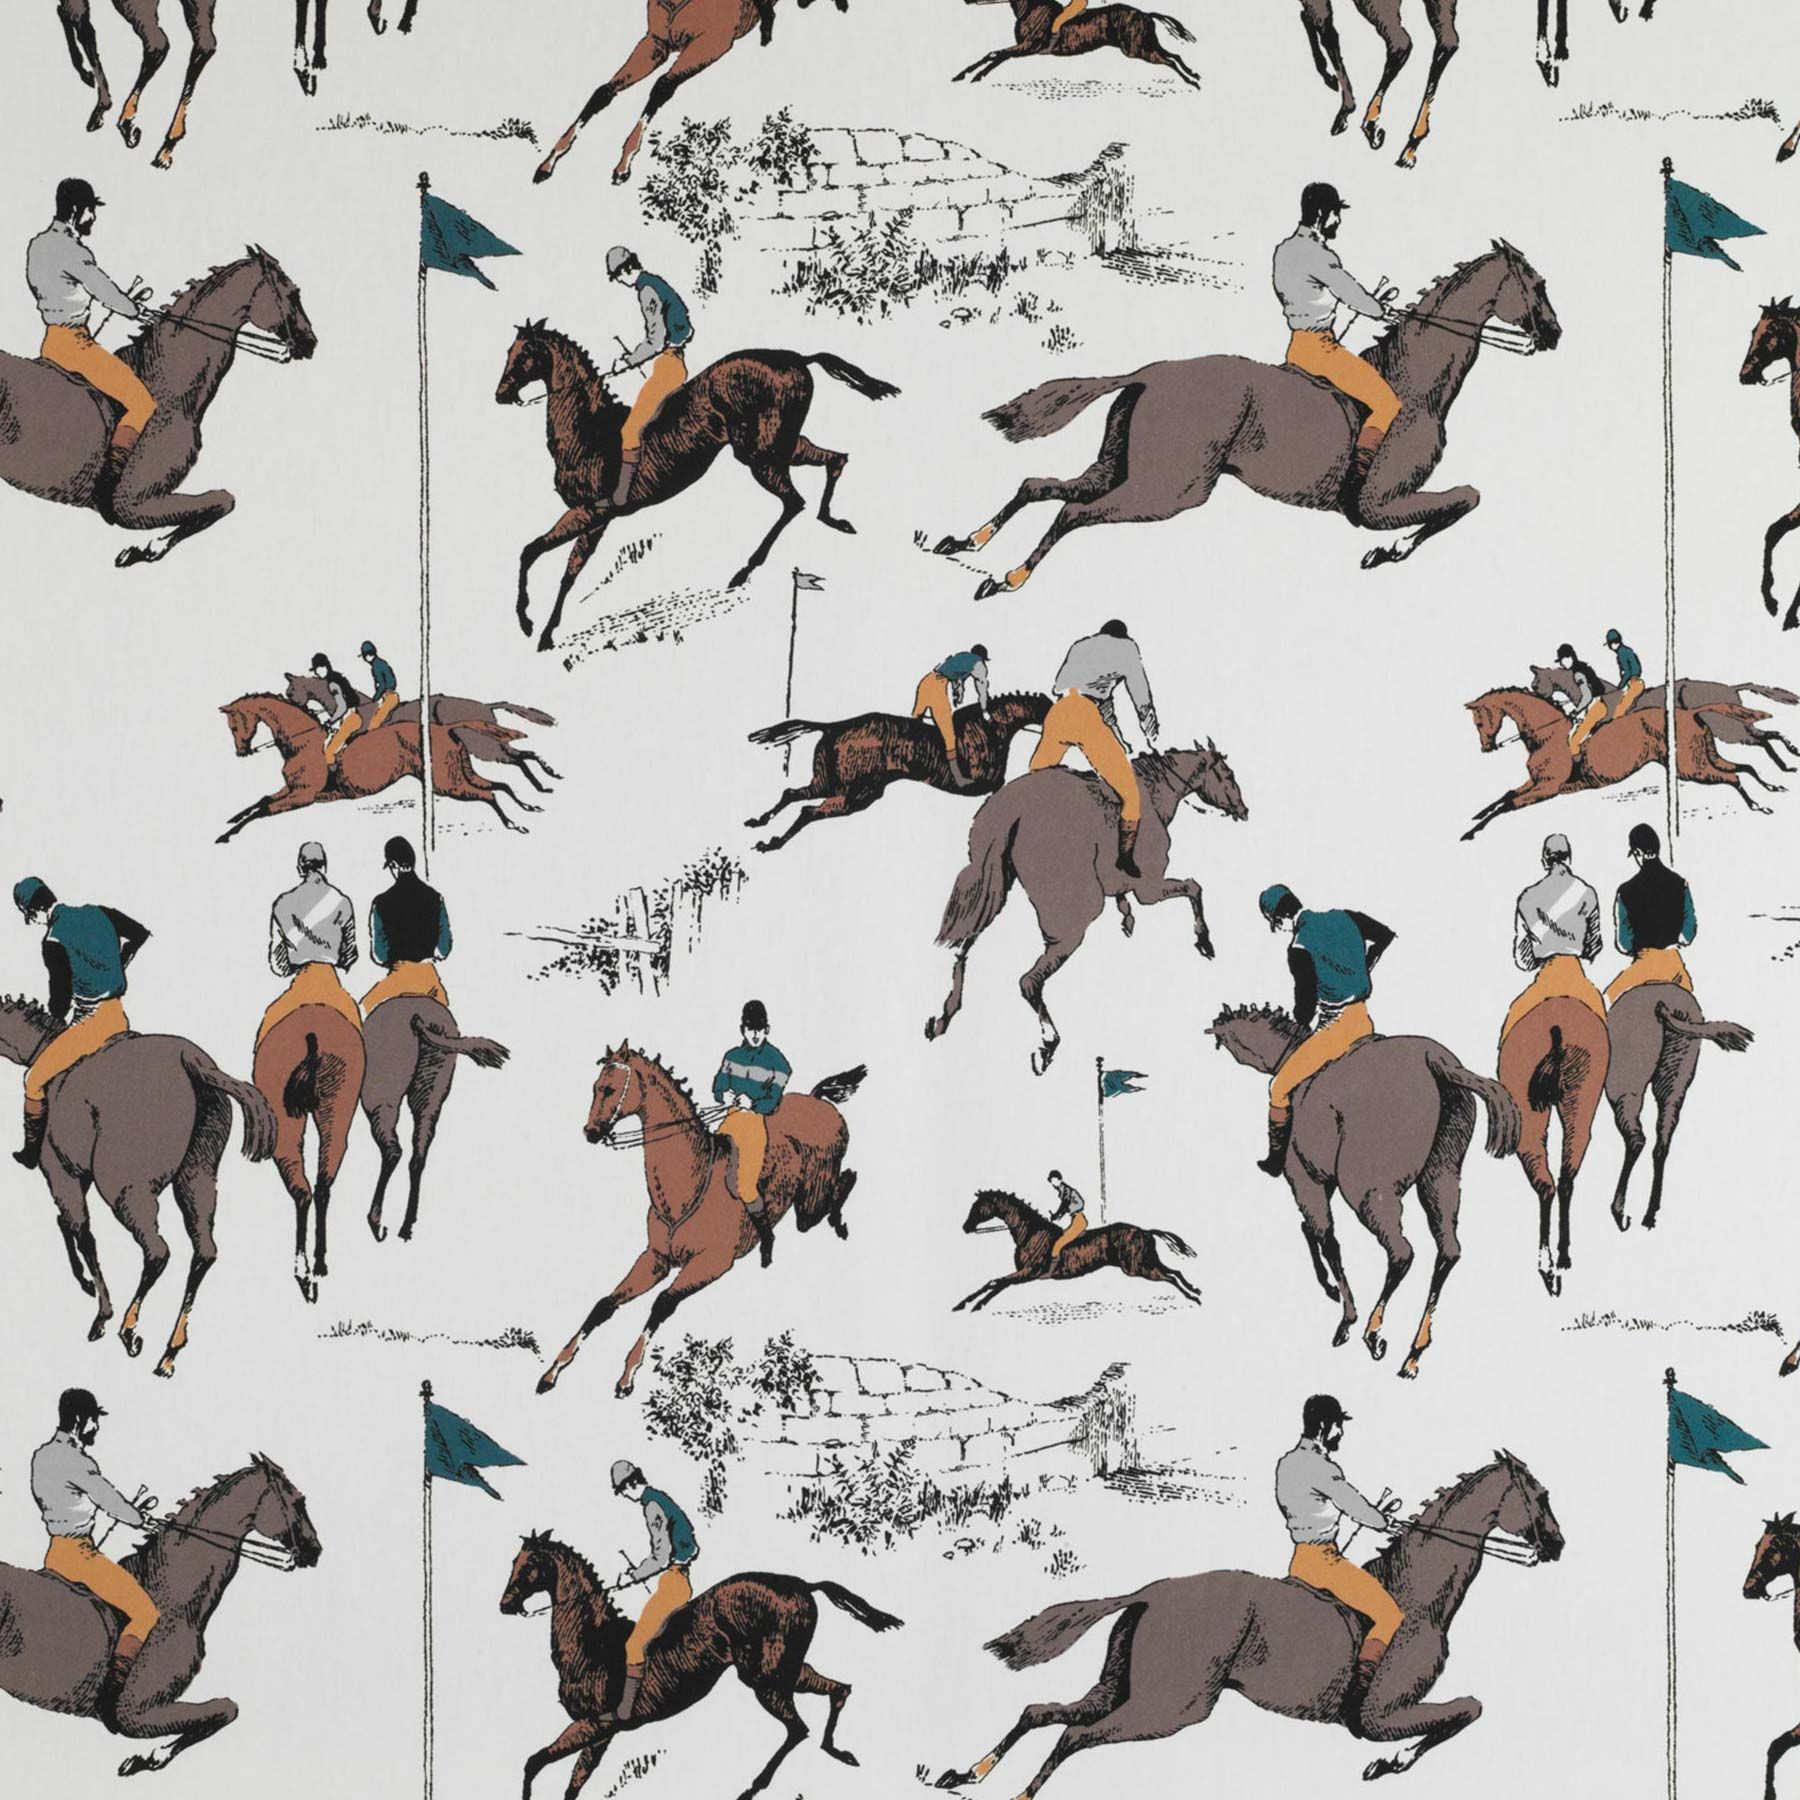 Popular Wallpaper Horse Pattern - a8f7f0fafa5ae939a7a661d59395c98b  Picture_872748.jpg